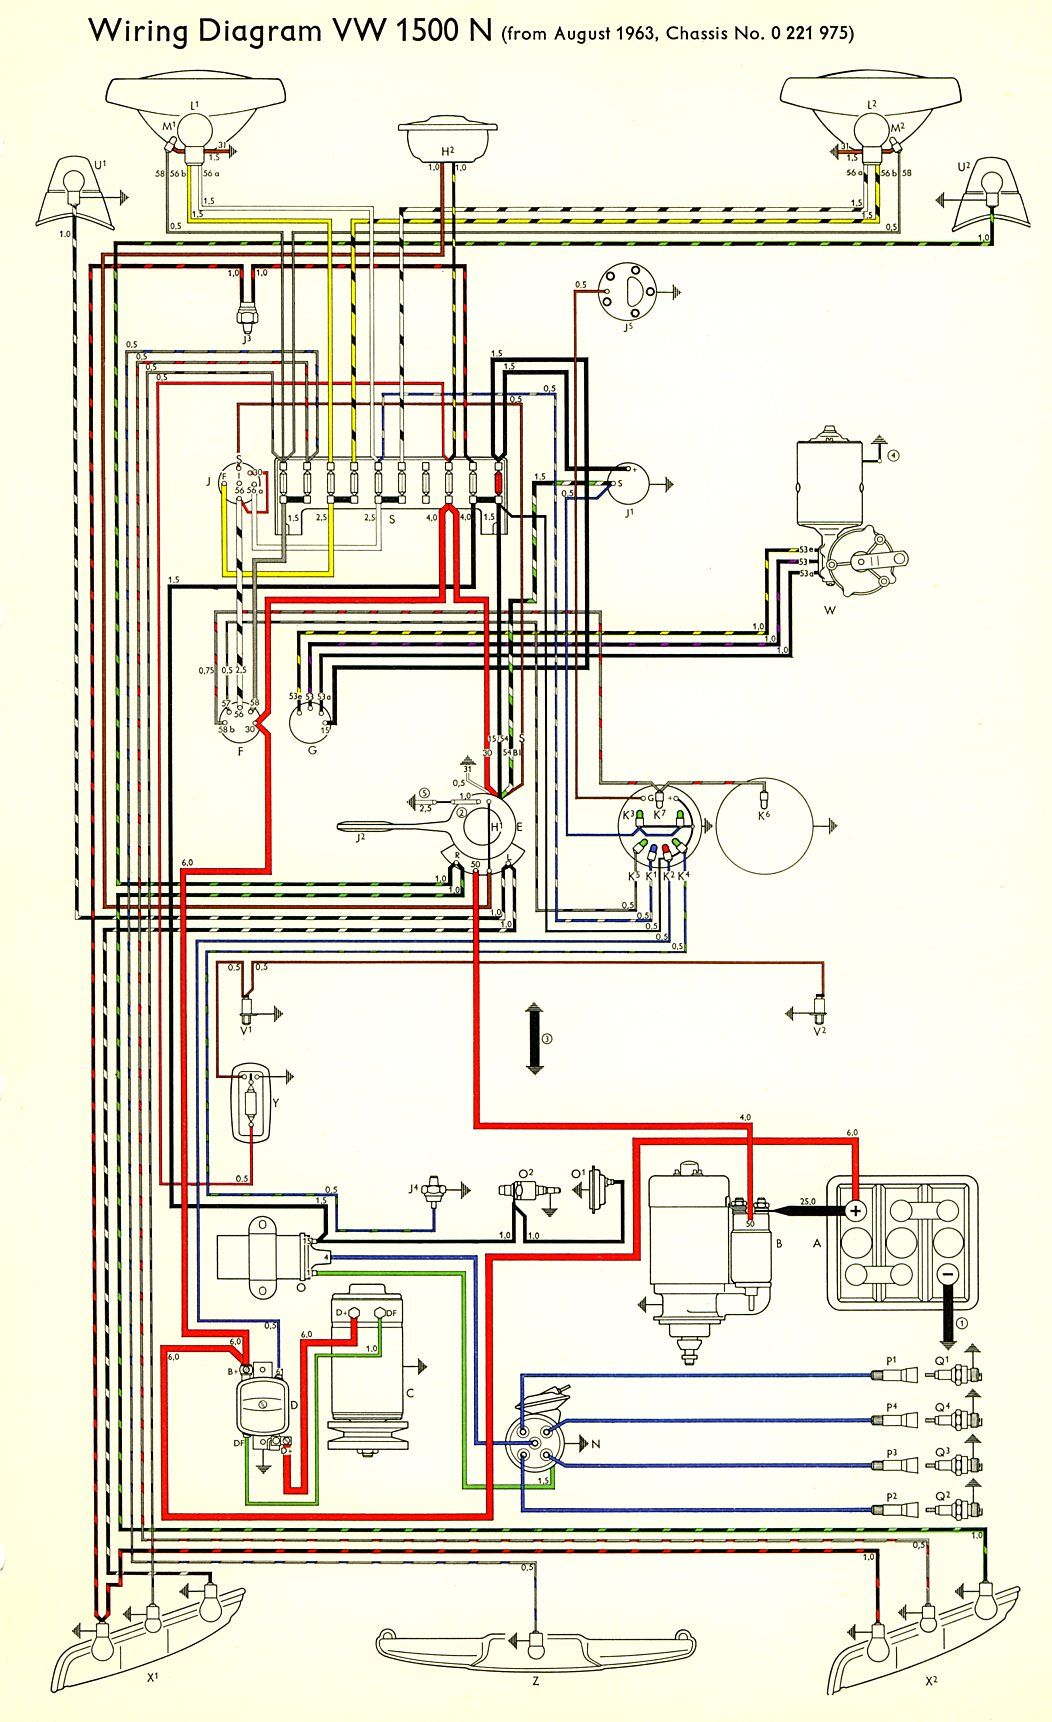 type3_1500N_64 thesamba com type 3 wiring diagrams 1963 vw wiring diagram at alyssarenee.co